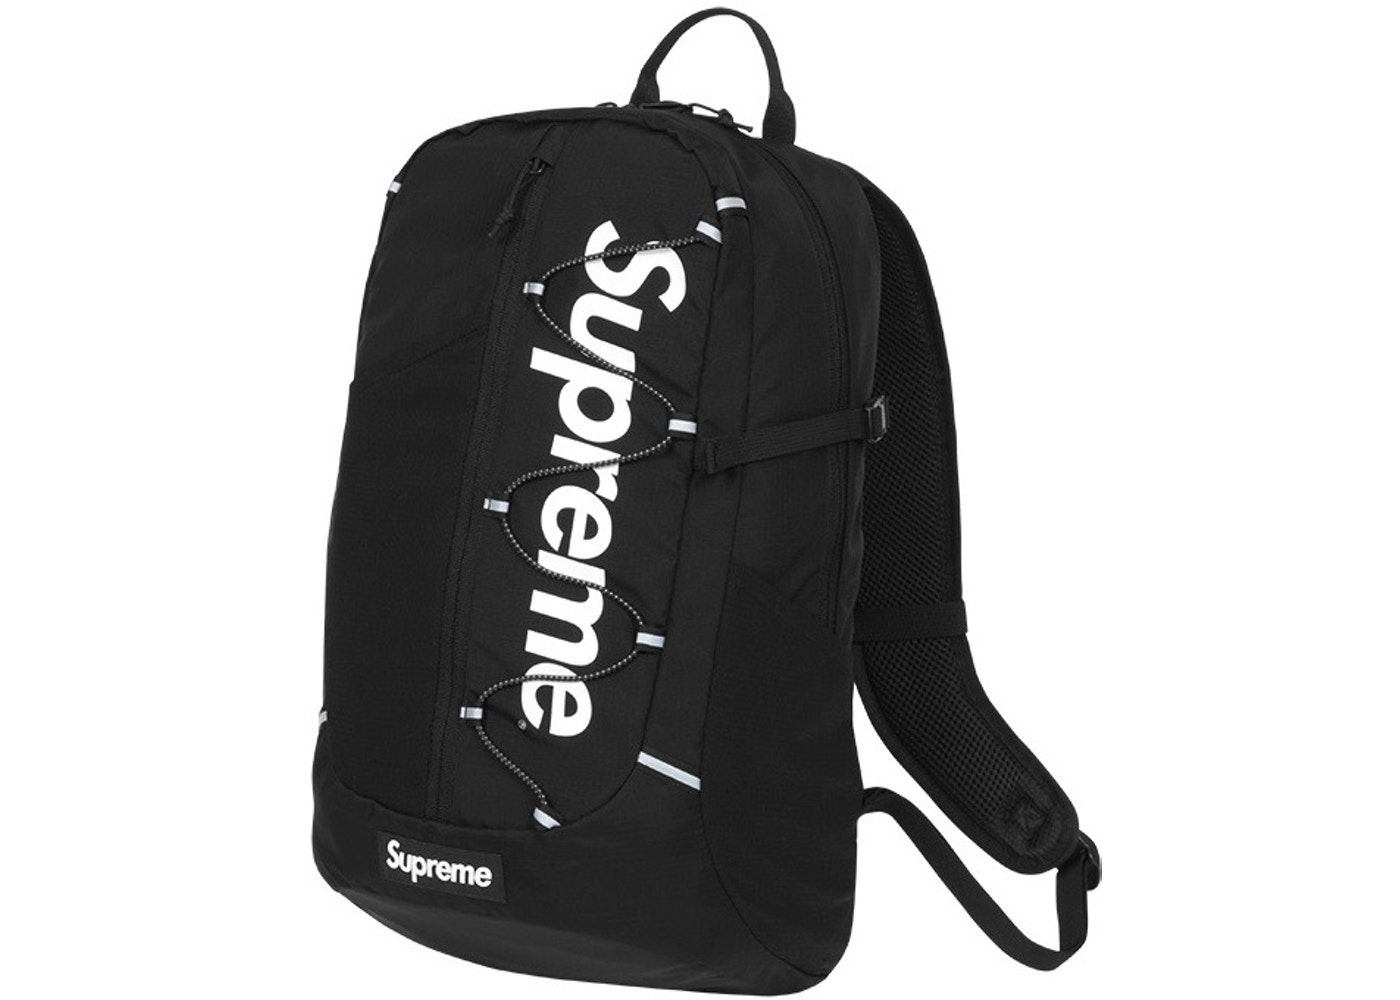 Supreme SS17 Backpack Black